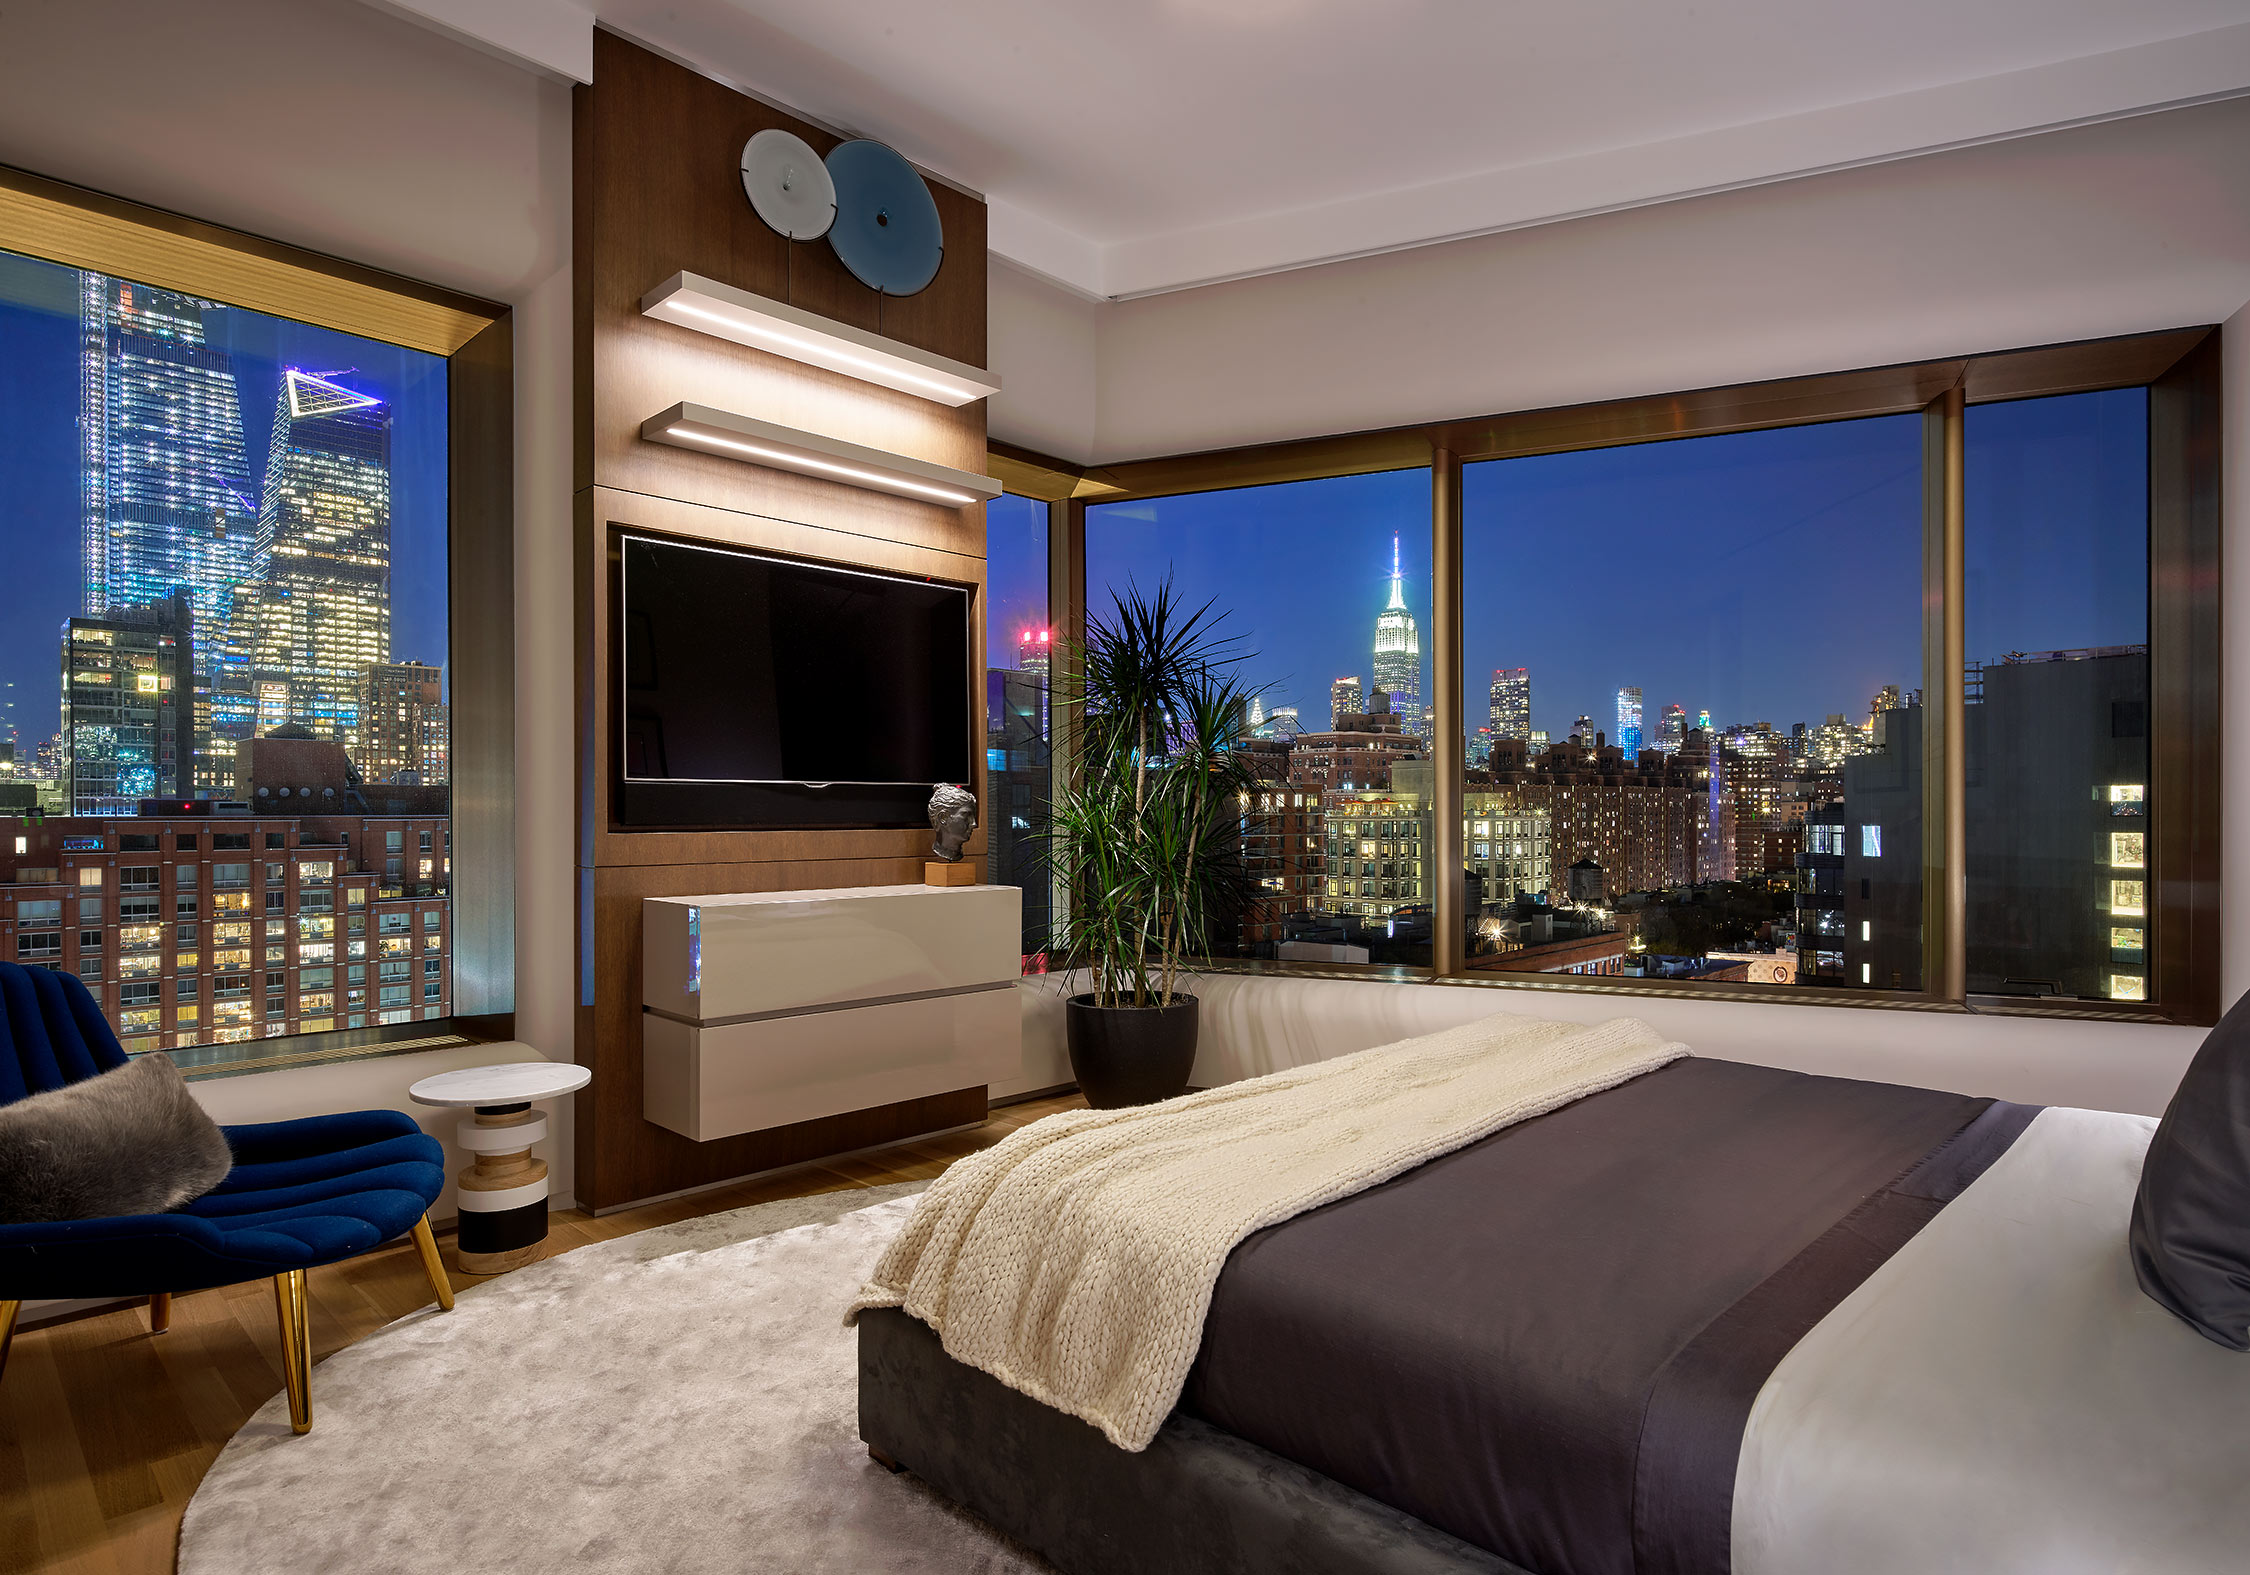 New-York-City-Contemporary-Interior-Pepe-Calderin-Design-Twilight-View